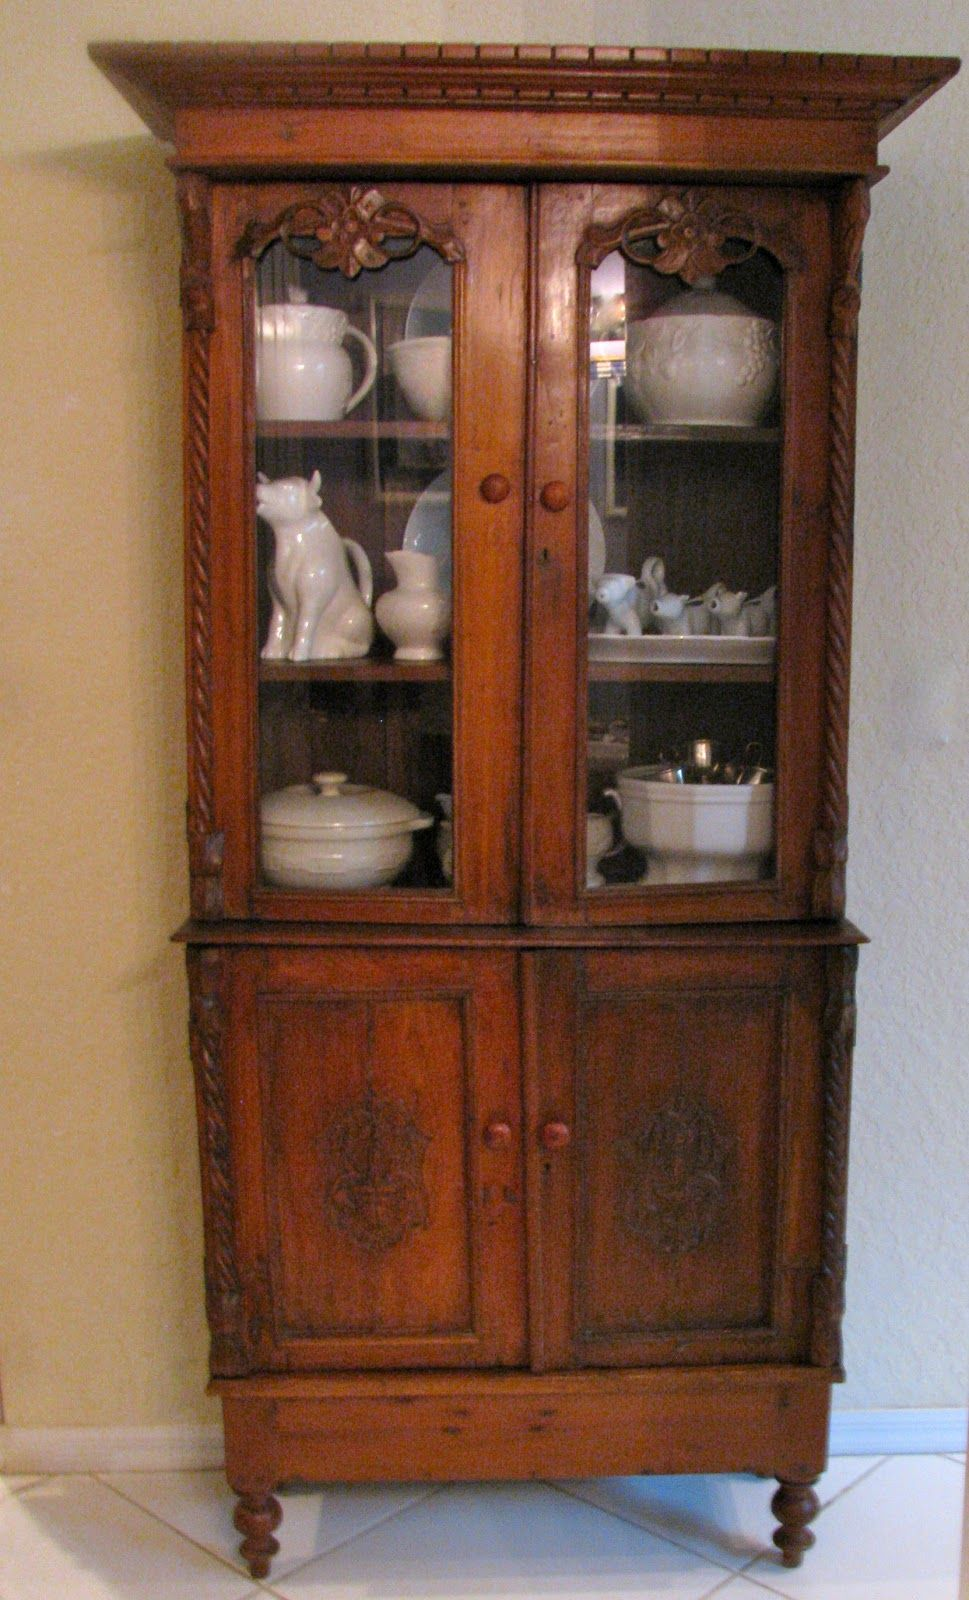 May Days Craigslist Antique Cupboard Ritamay Days